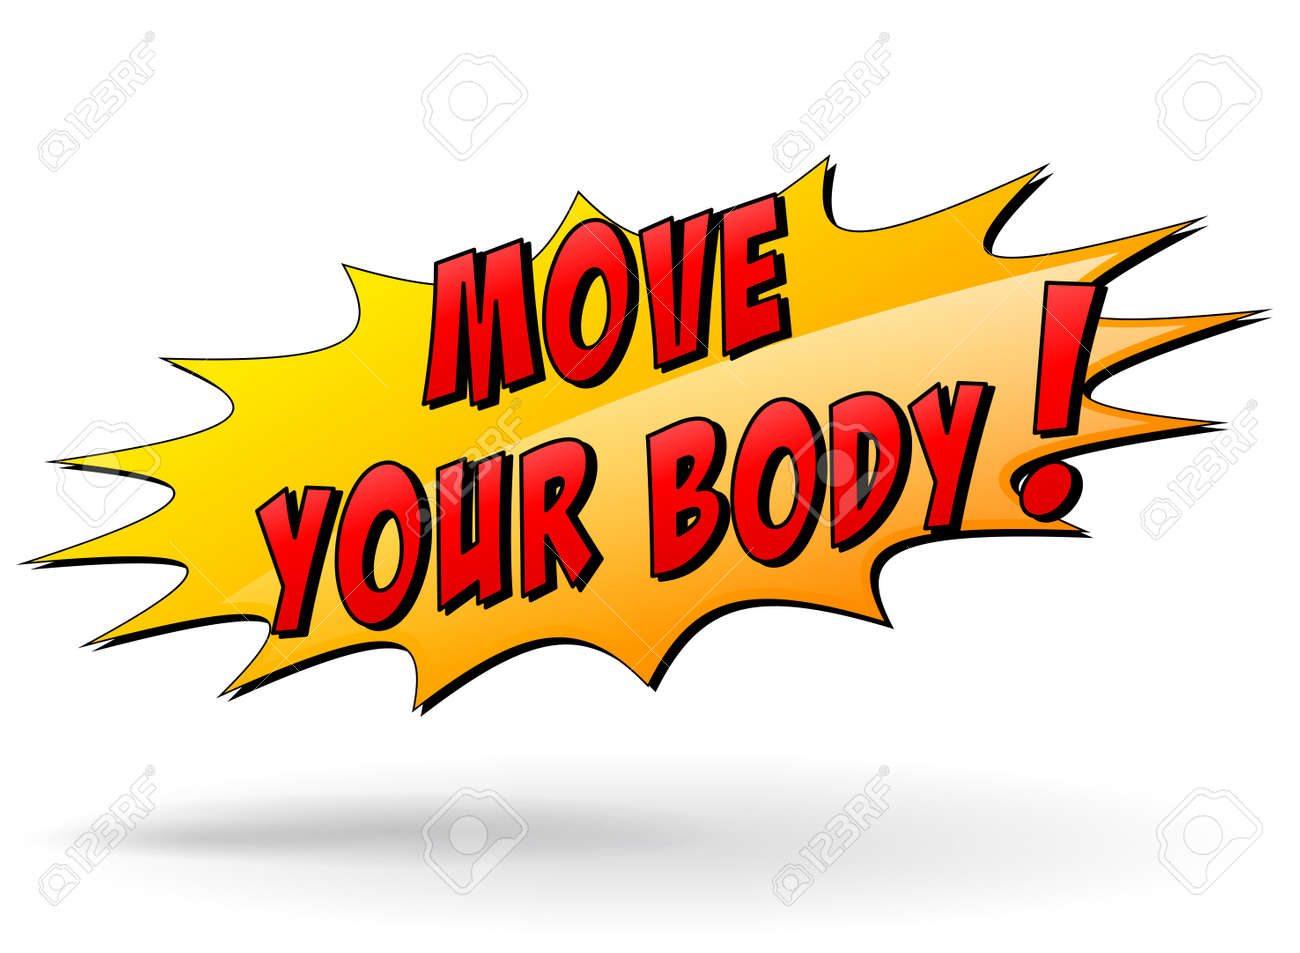 Vector Illustration Of Move Your Body Yellow Star Icon Concept Royalty Free Cliparts Vectors And Stock Illustration Image 31325344